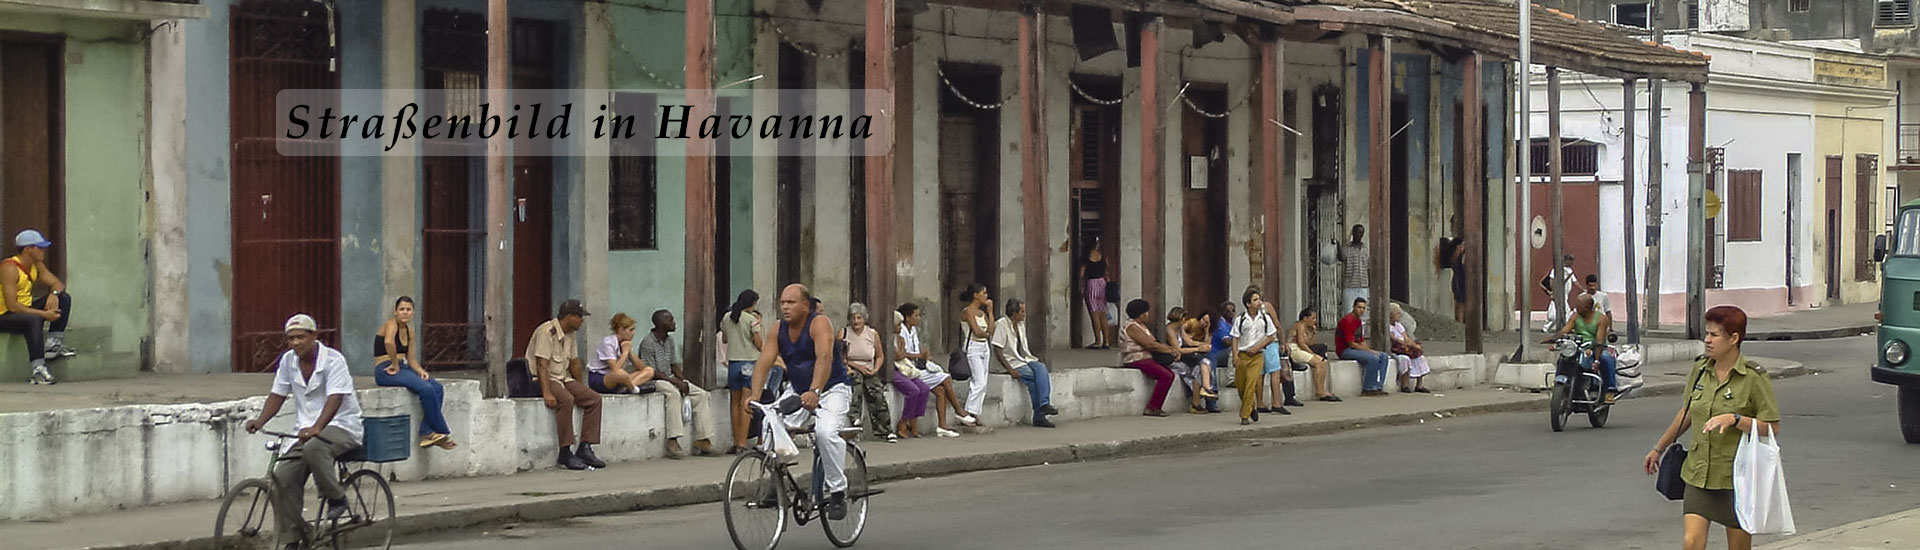 Strassenbild-in-Havanna